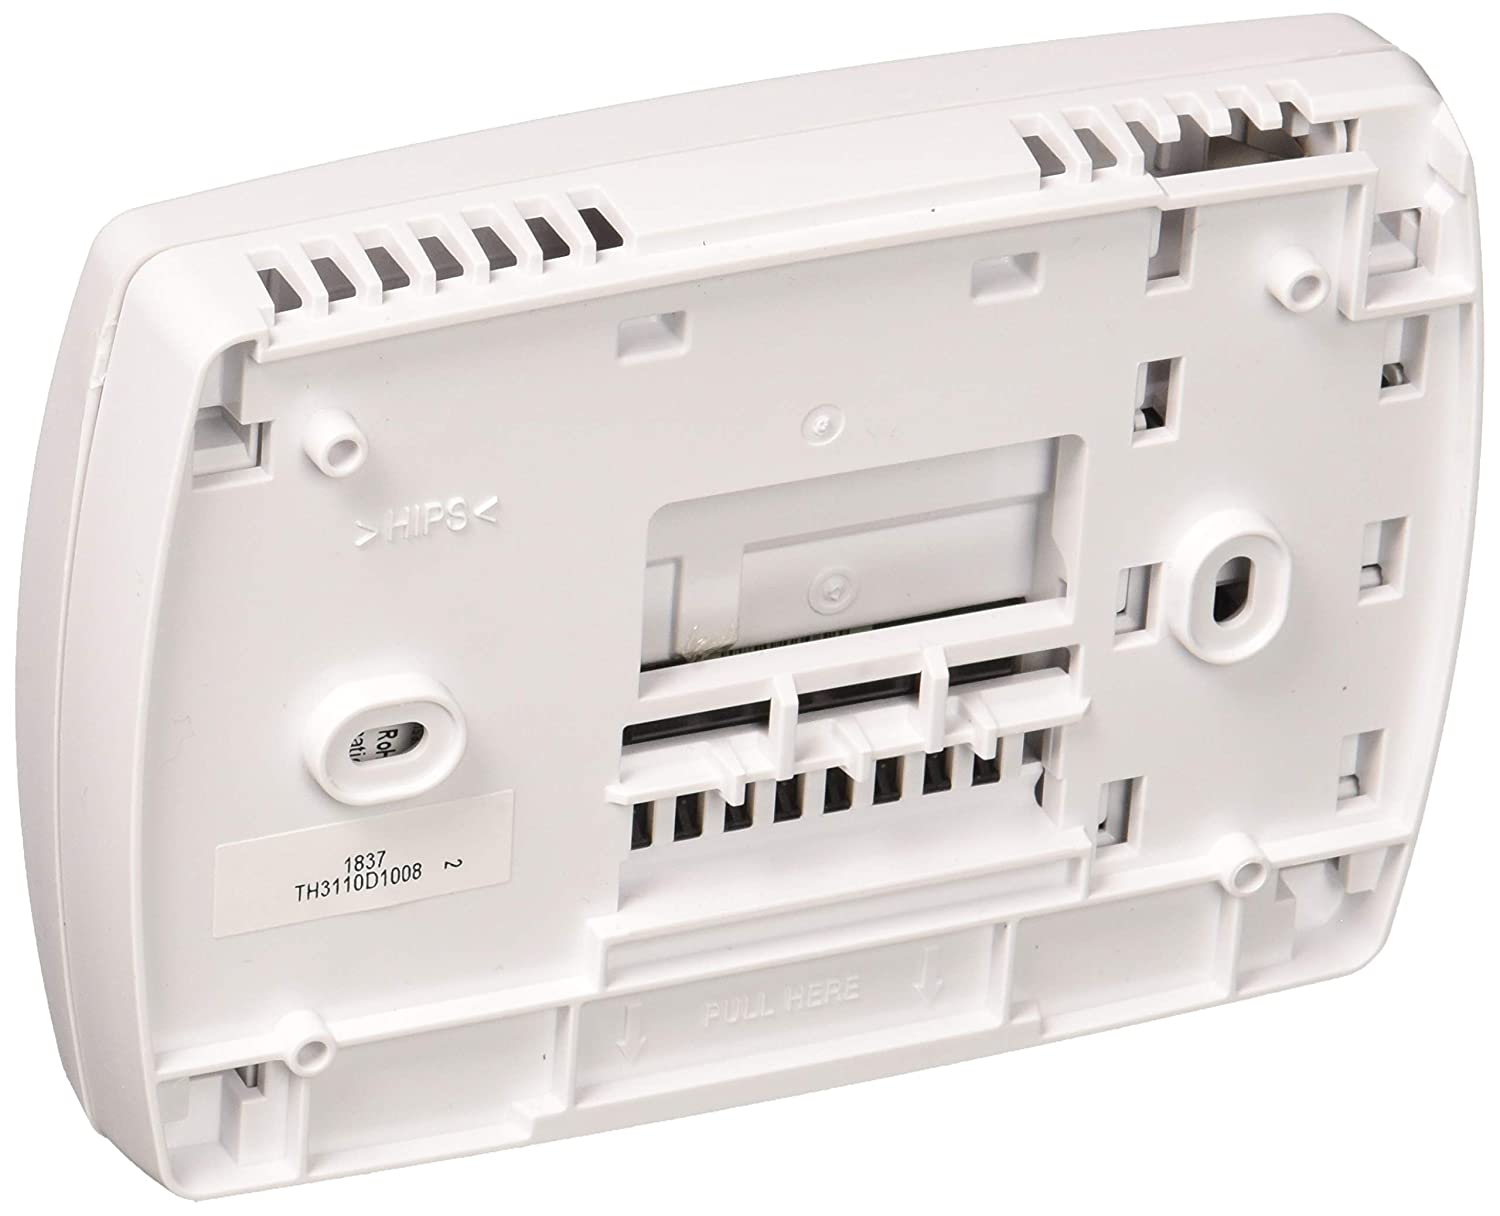 Honeywell Pro 4000 Thermostat Wiring Diagram Get Free Image About